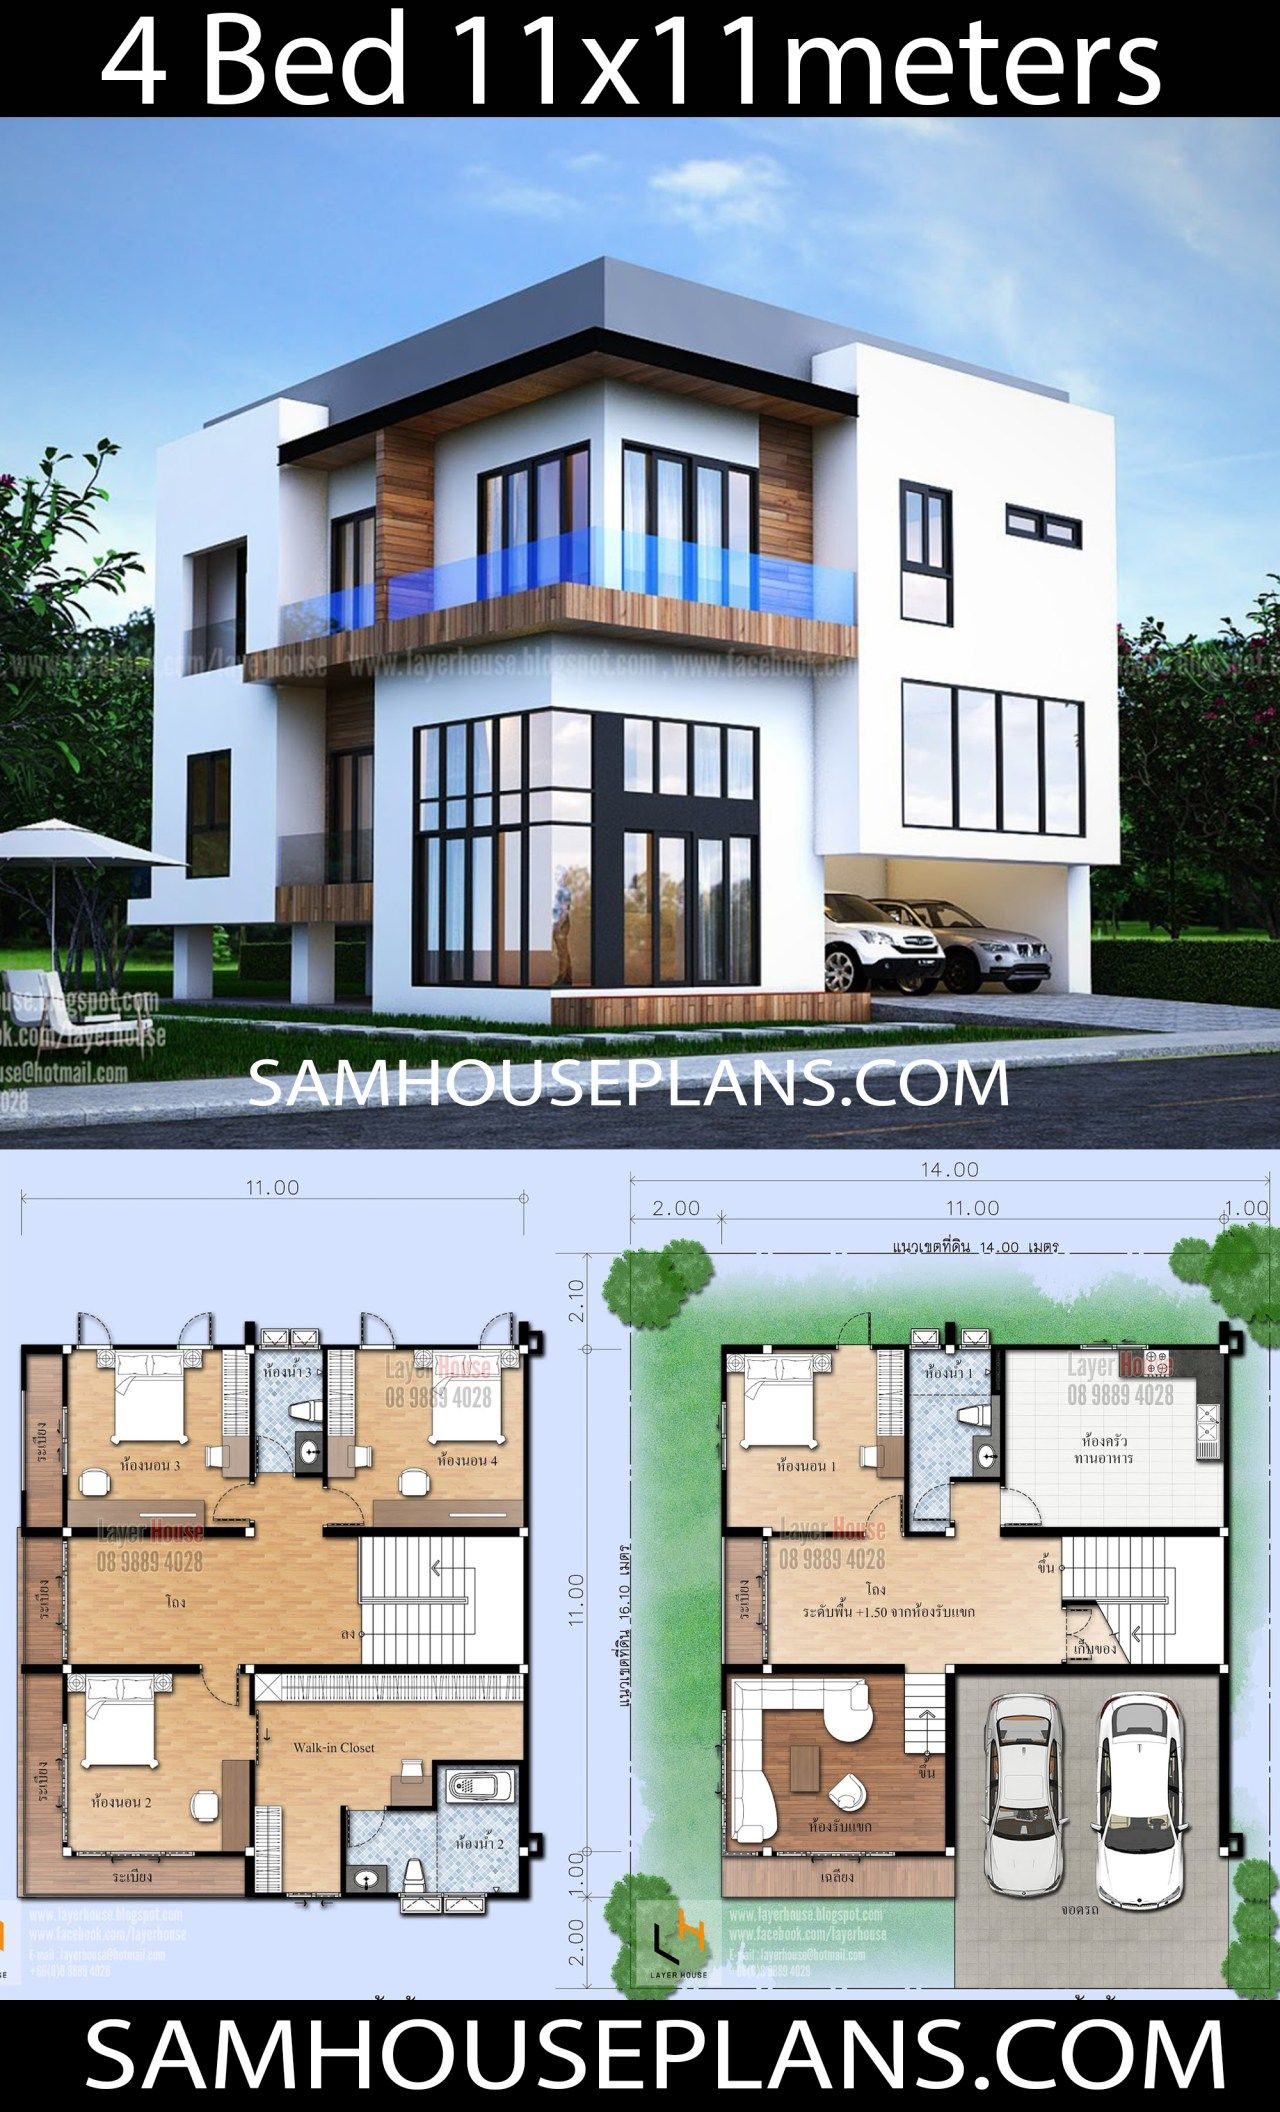 House Plans 11x11 With 4 Bedrooms Sam House Plans In 2020 Model House Plan Architectural House Plans Duplex House Design